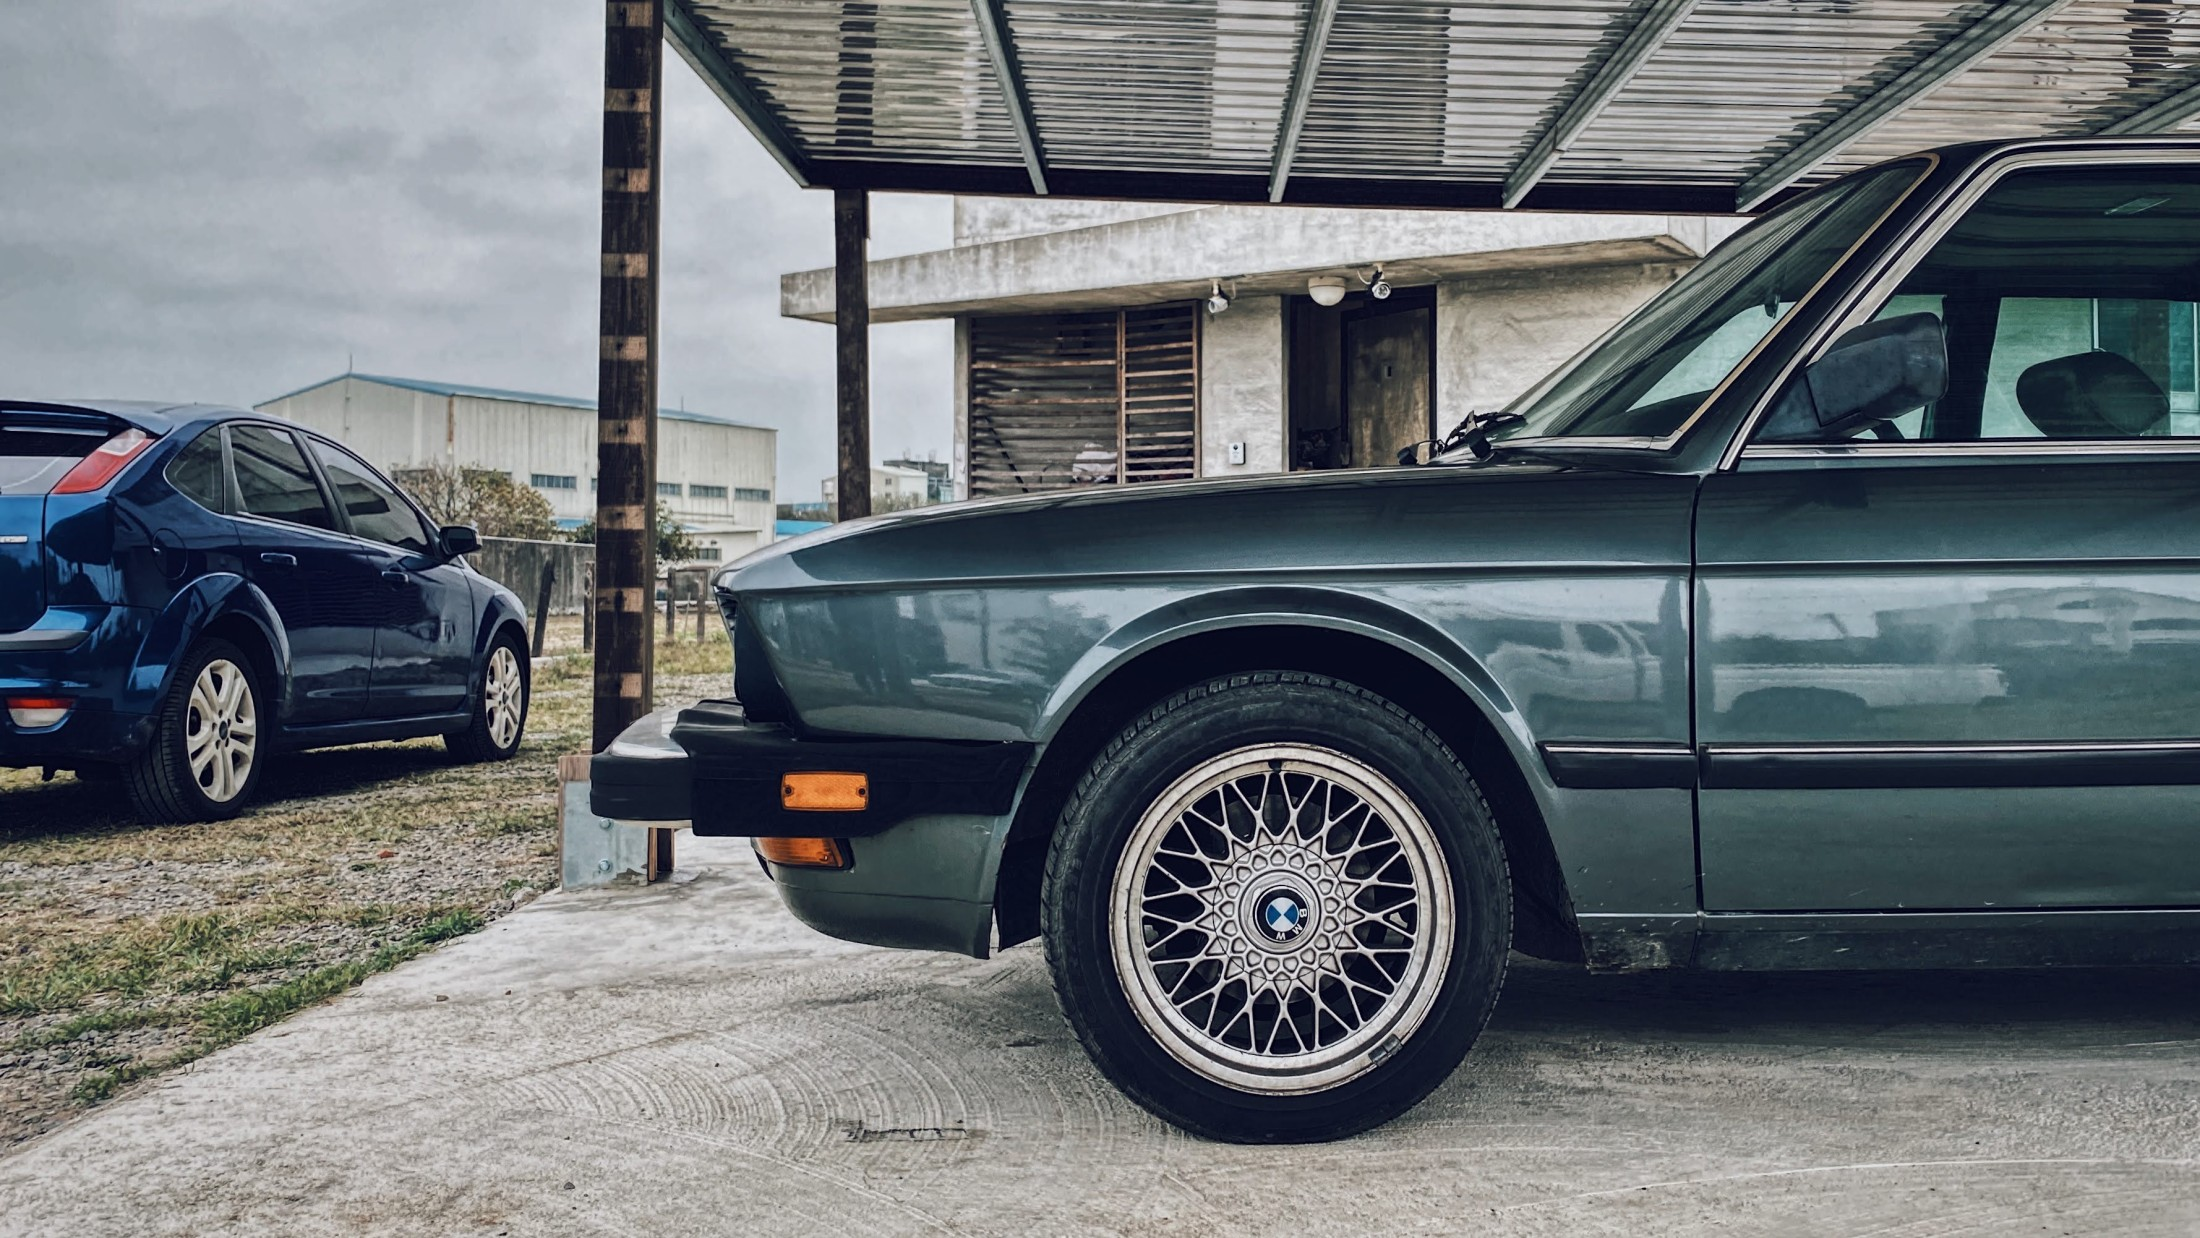 BMW E28 520i US-Spec at Natural n Vintage